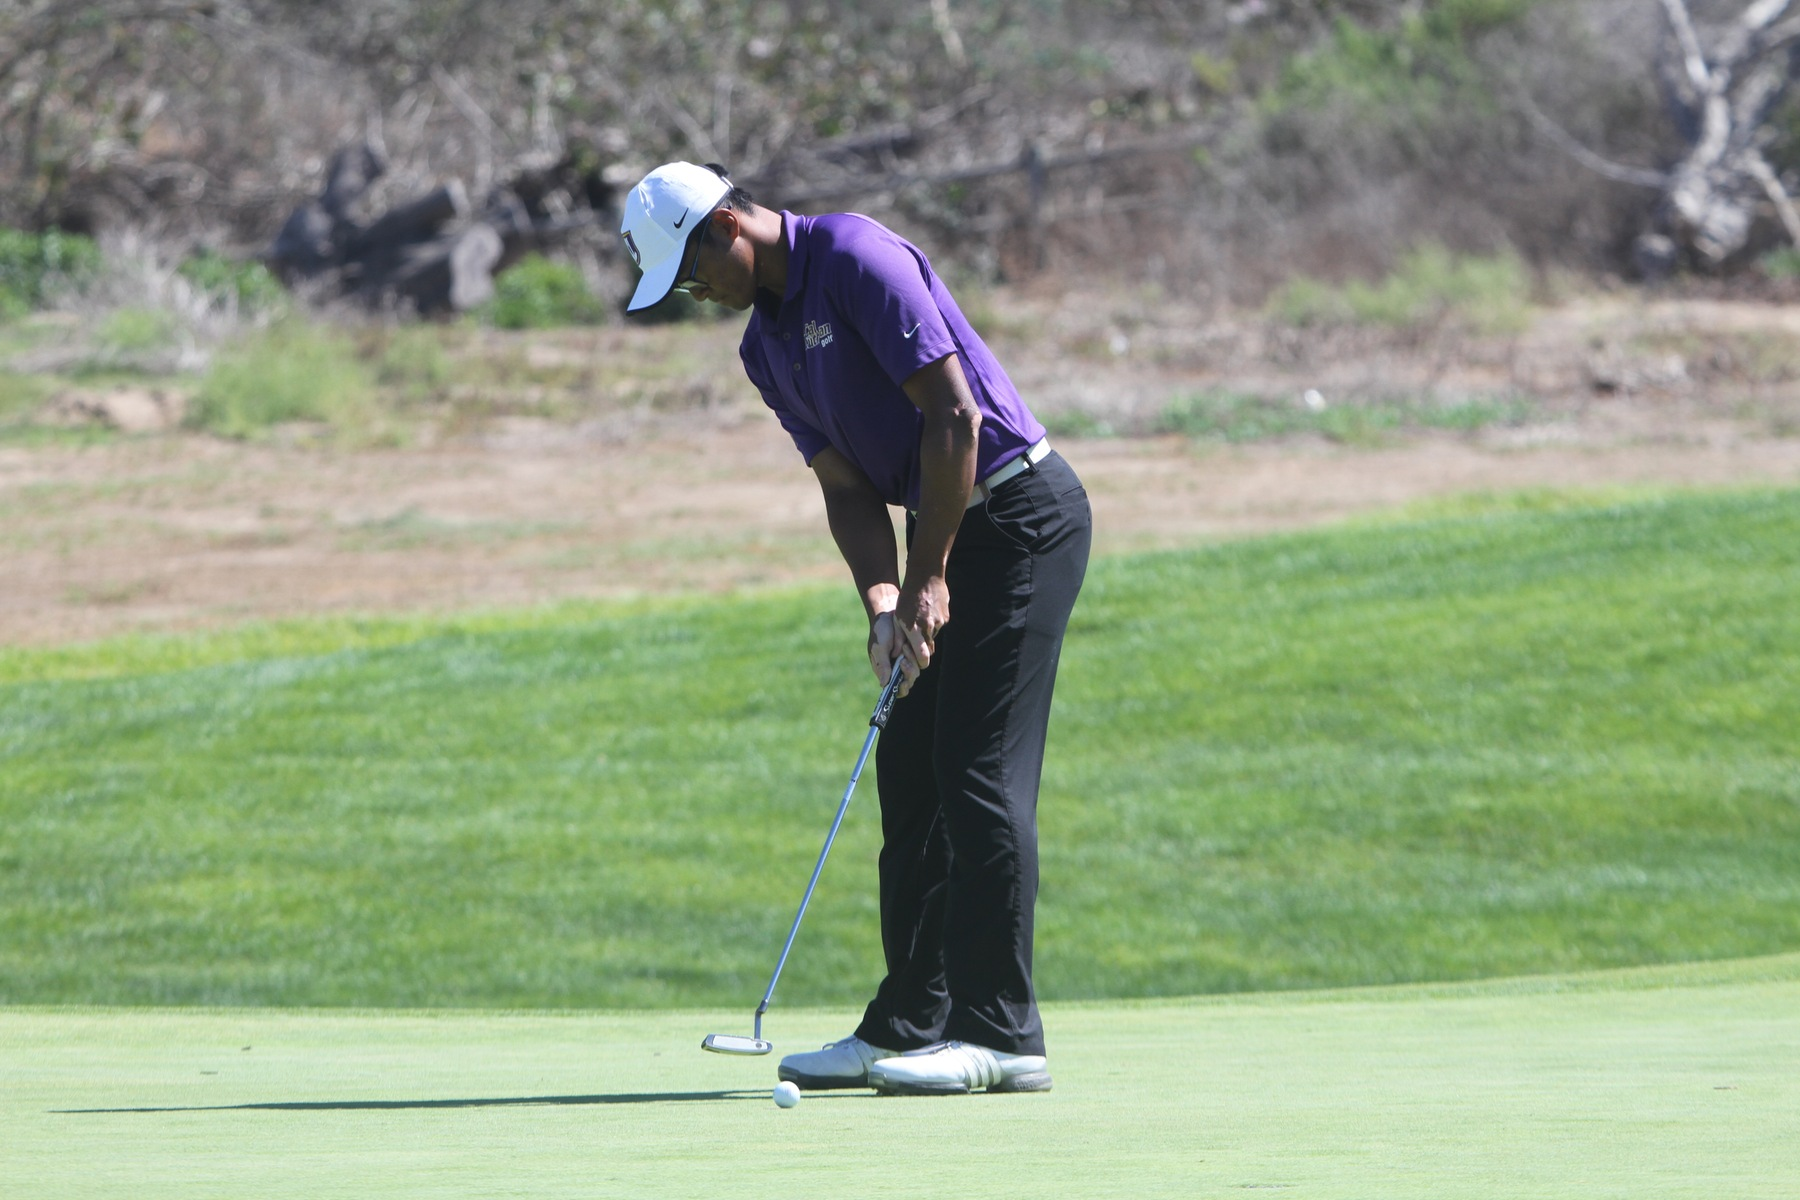 Ryan Kyaw putts at the CA State Intercollegiate.